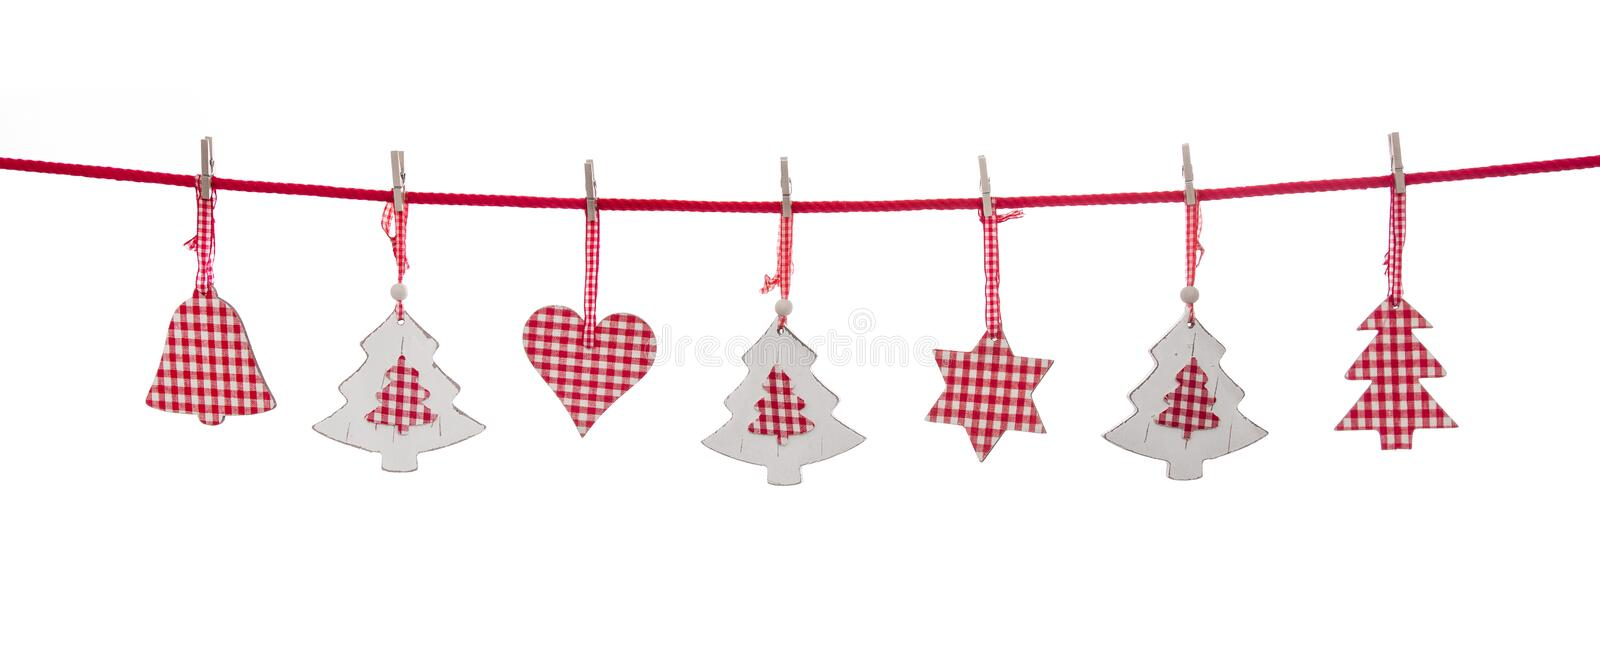 isolated red and white christmas decoration hanging on a